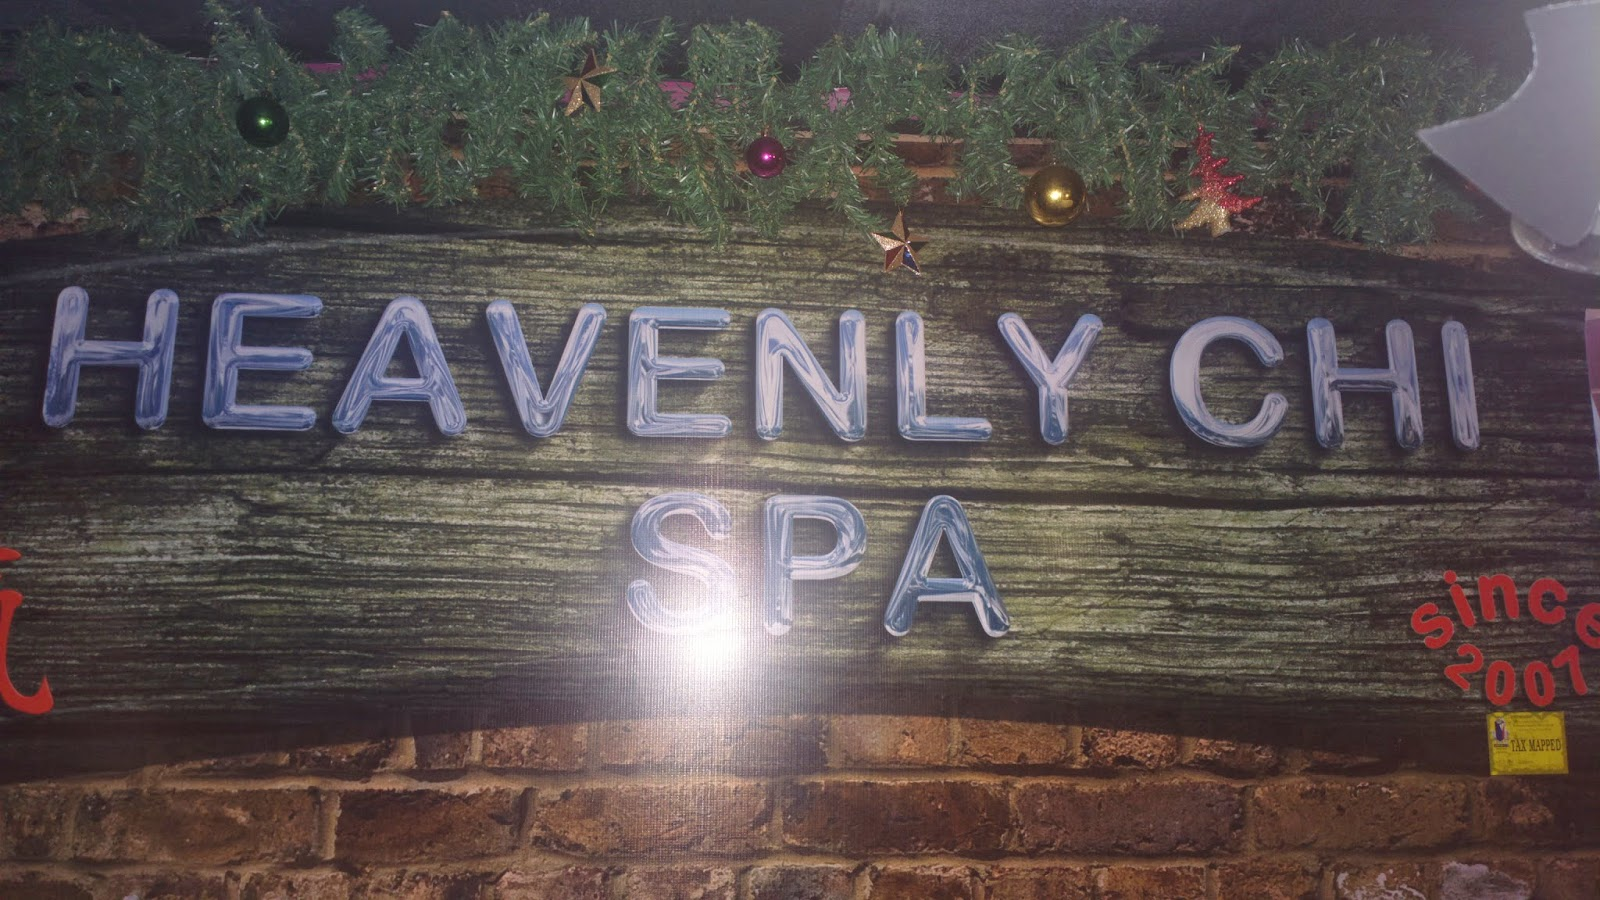 heavenly chi spa urdaneta city